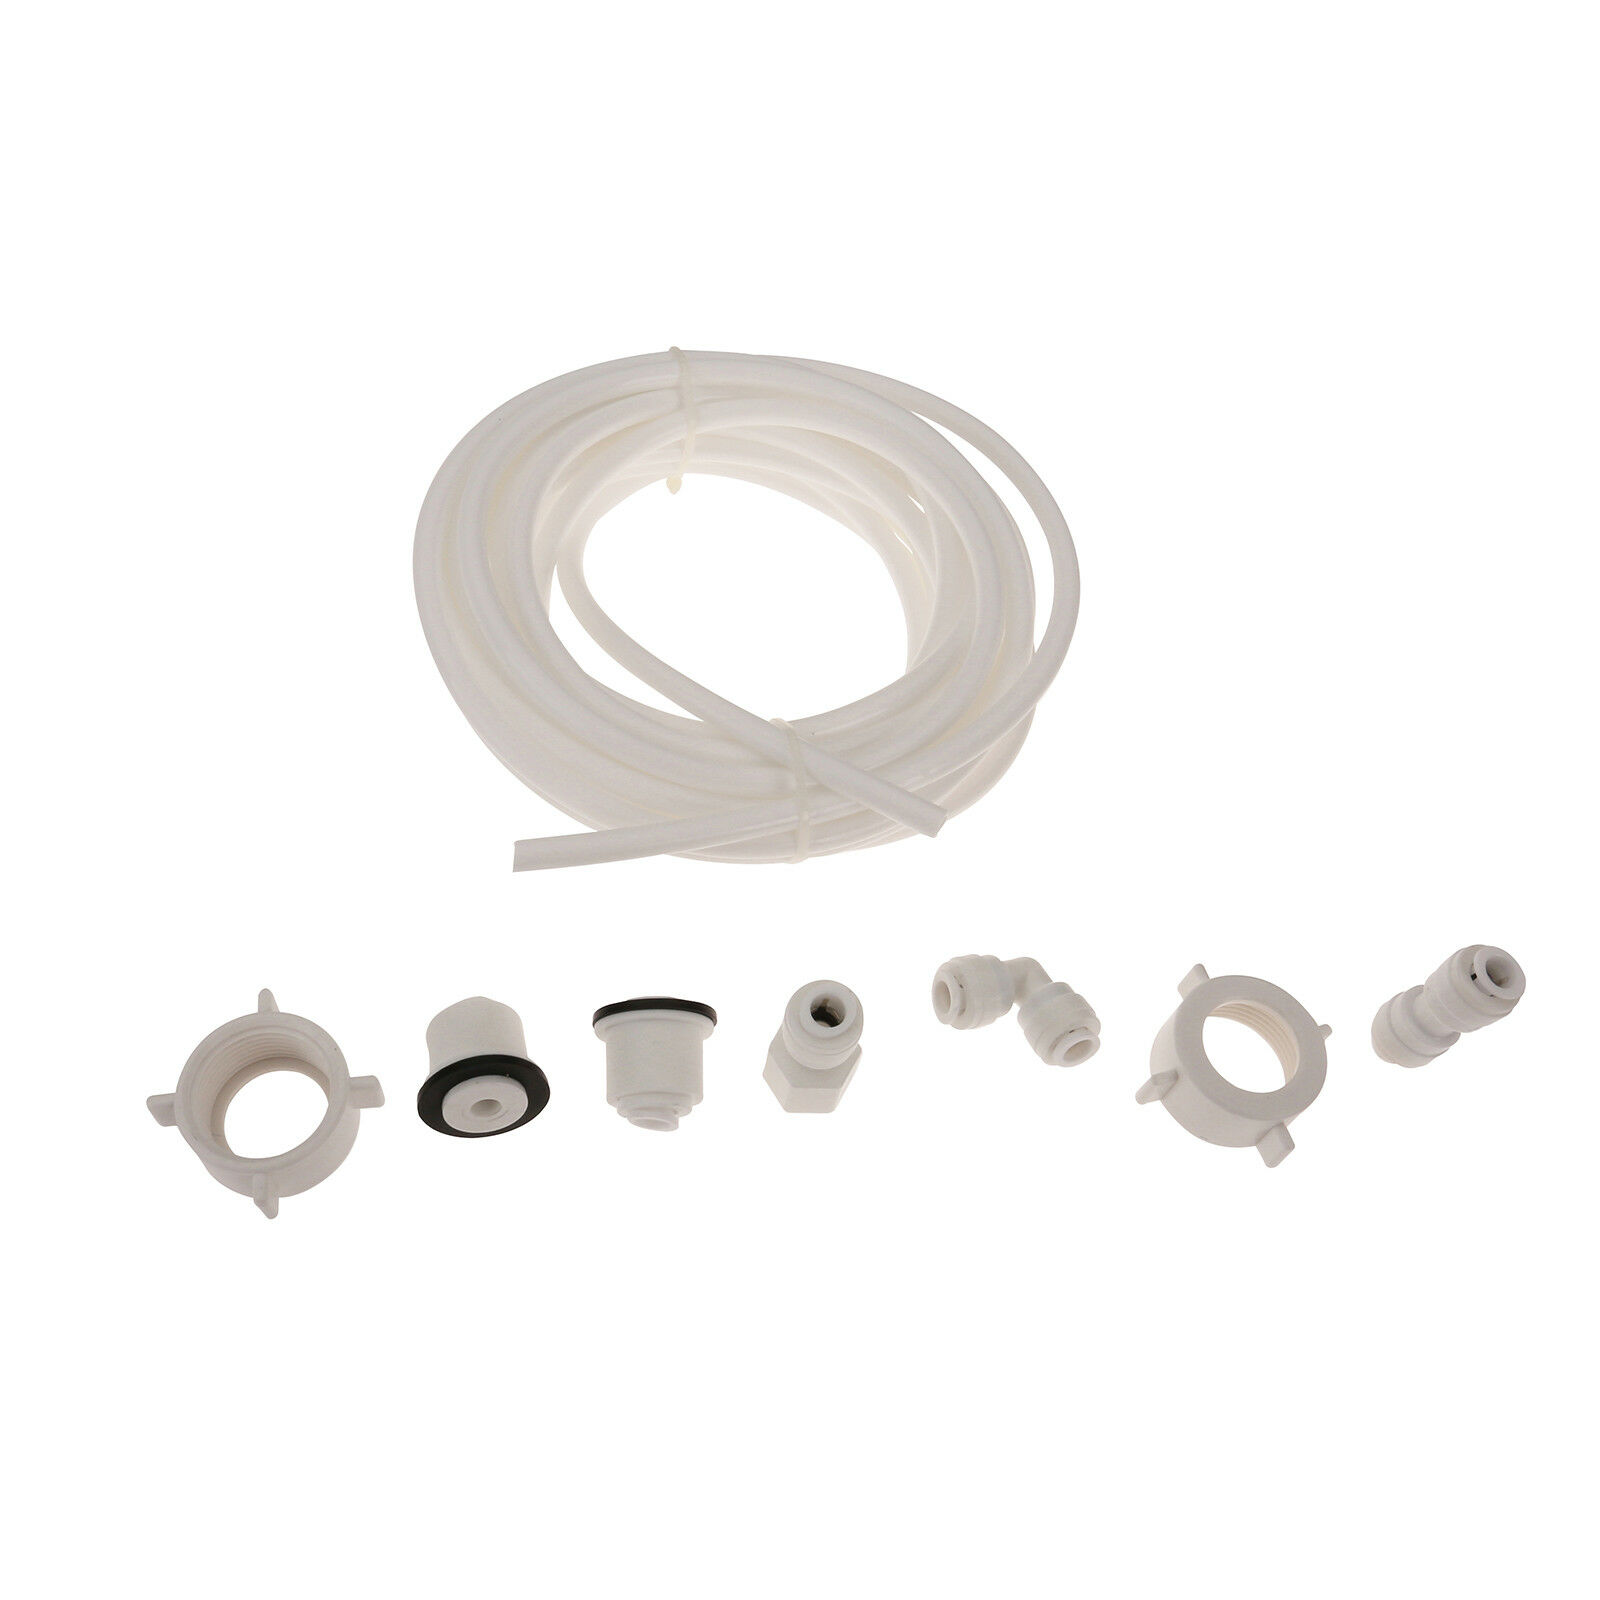 UNIVERSAL American Double Fridge Filter Water Supply Pipe Tube Connector Kit